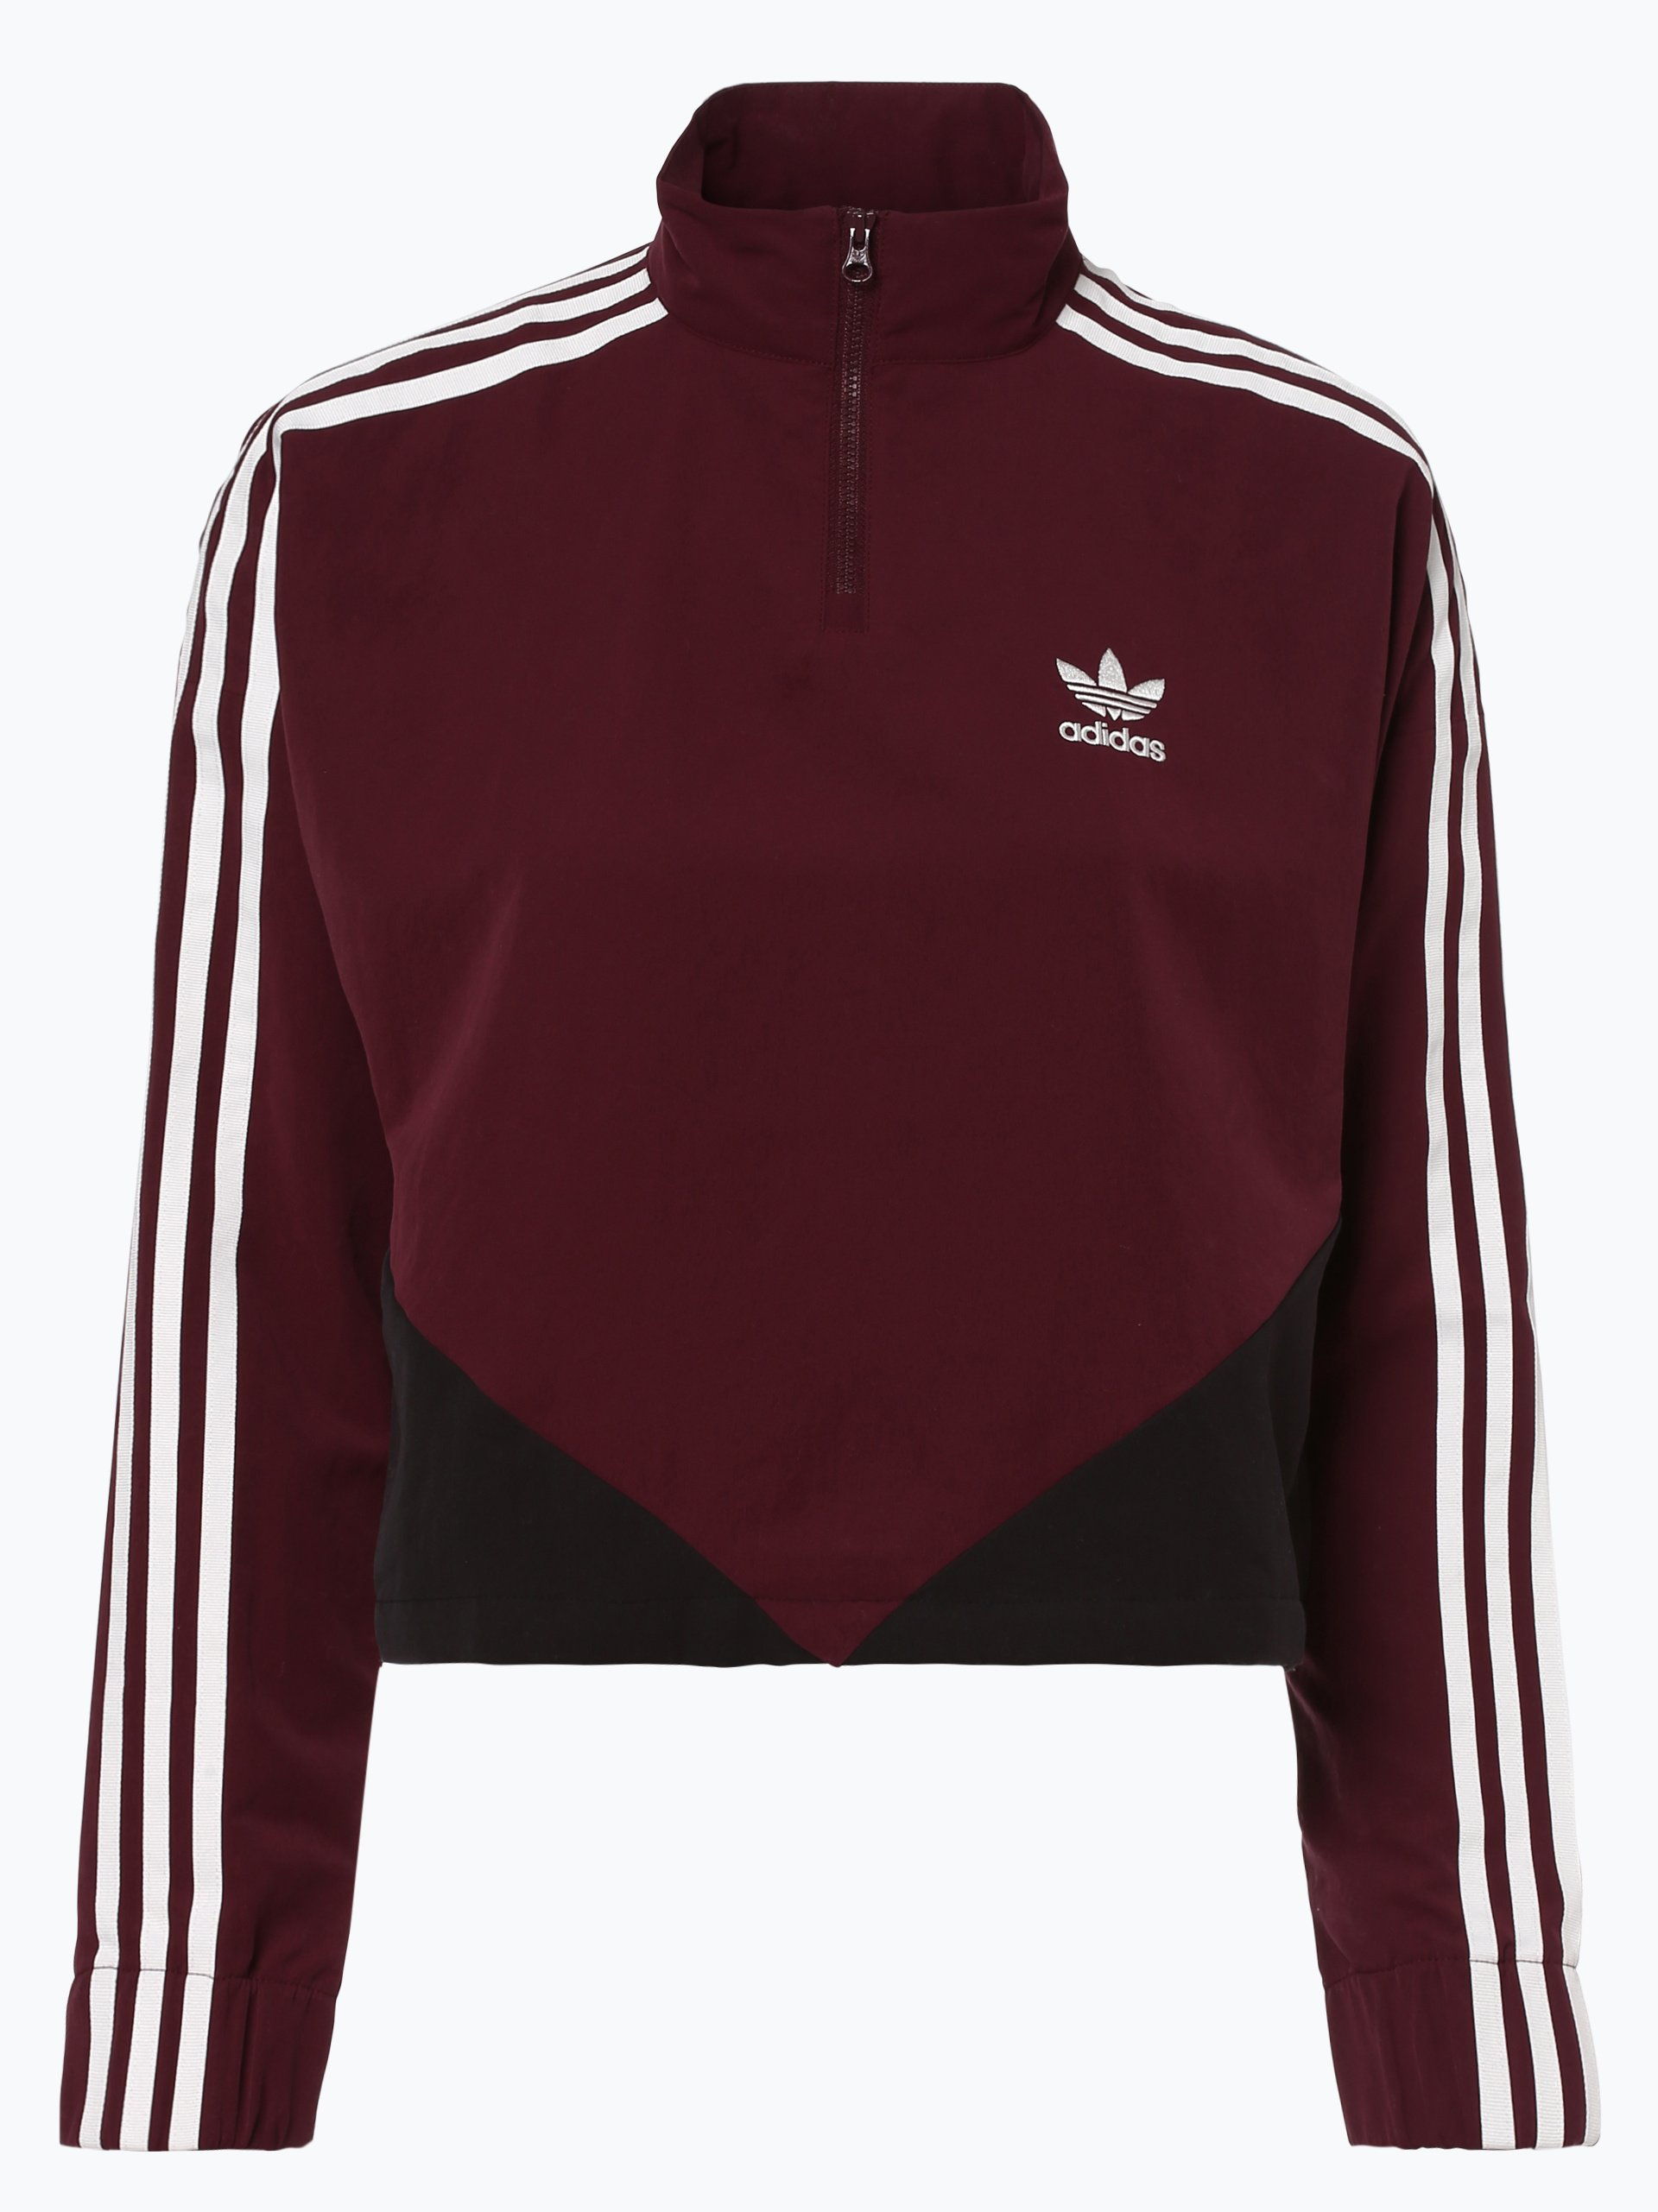 adidas Originals Damen Sweatshirt